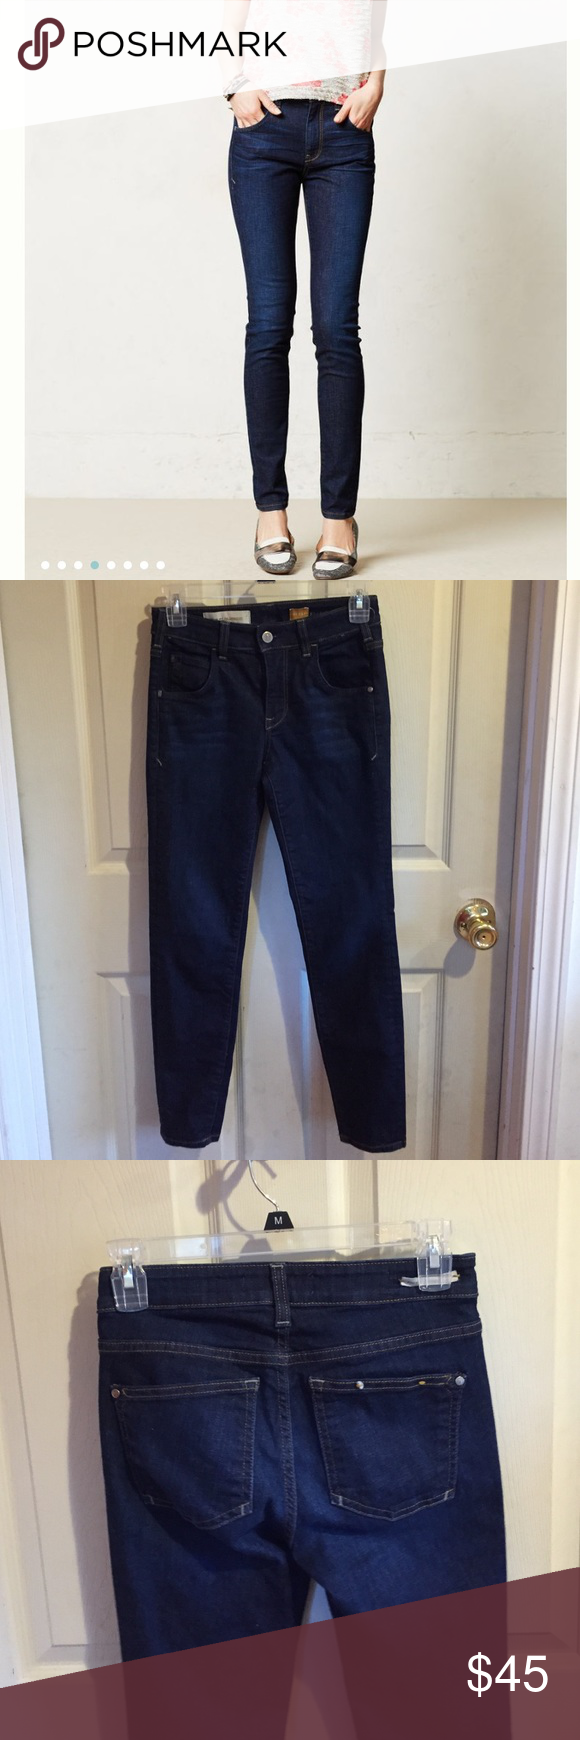 """Anthropologie Pilcro Superscript Jeans By Pilcro. These are a 24P; I wear a 25 and they fit me, so I think they could fit 24-25. Dark wash and comfy; cotton/polyester/elastane. Waist is about 13.5"""" flat no dip; rise is about 8.5; inseam is about 27""""; ankle is about 5"""" flat. They have a few tiny snags. Anthropologie Jeans Skinny"""